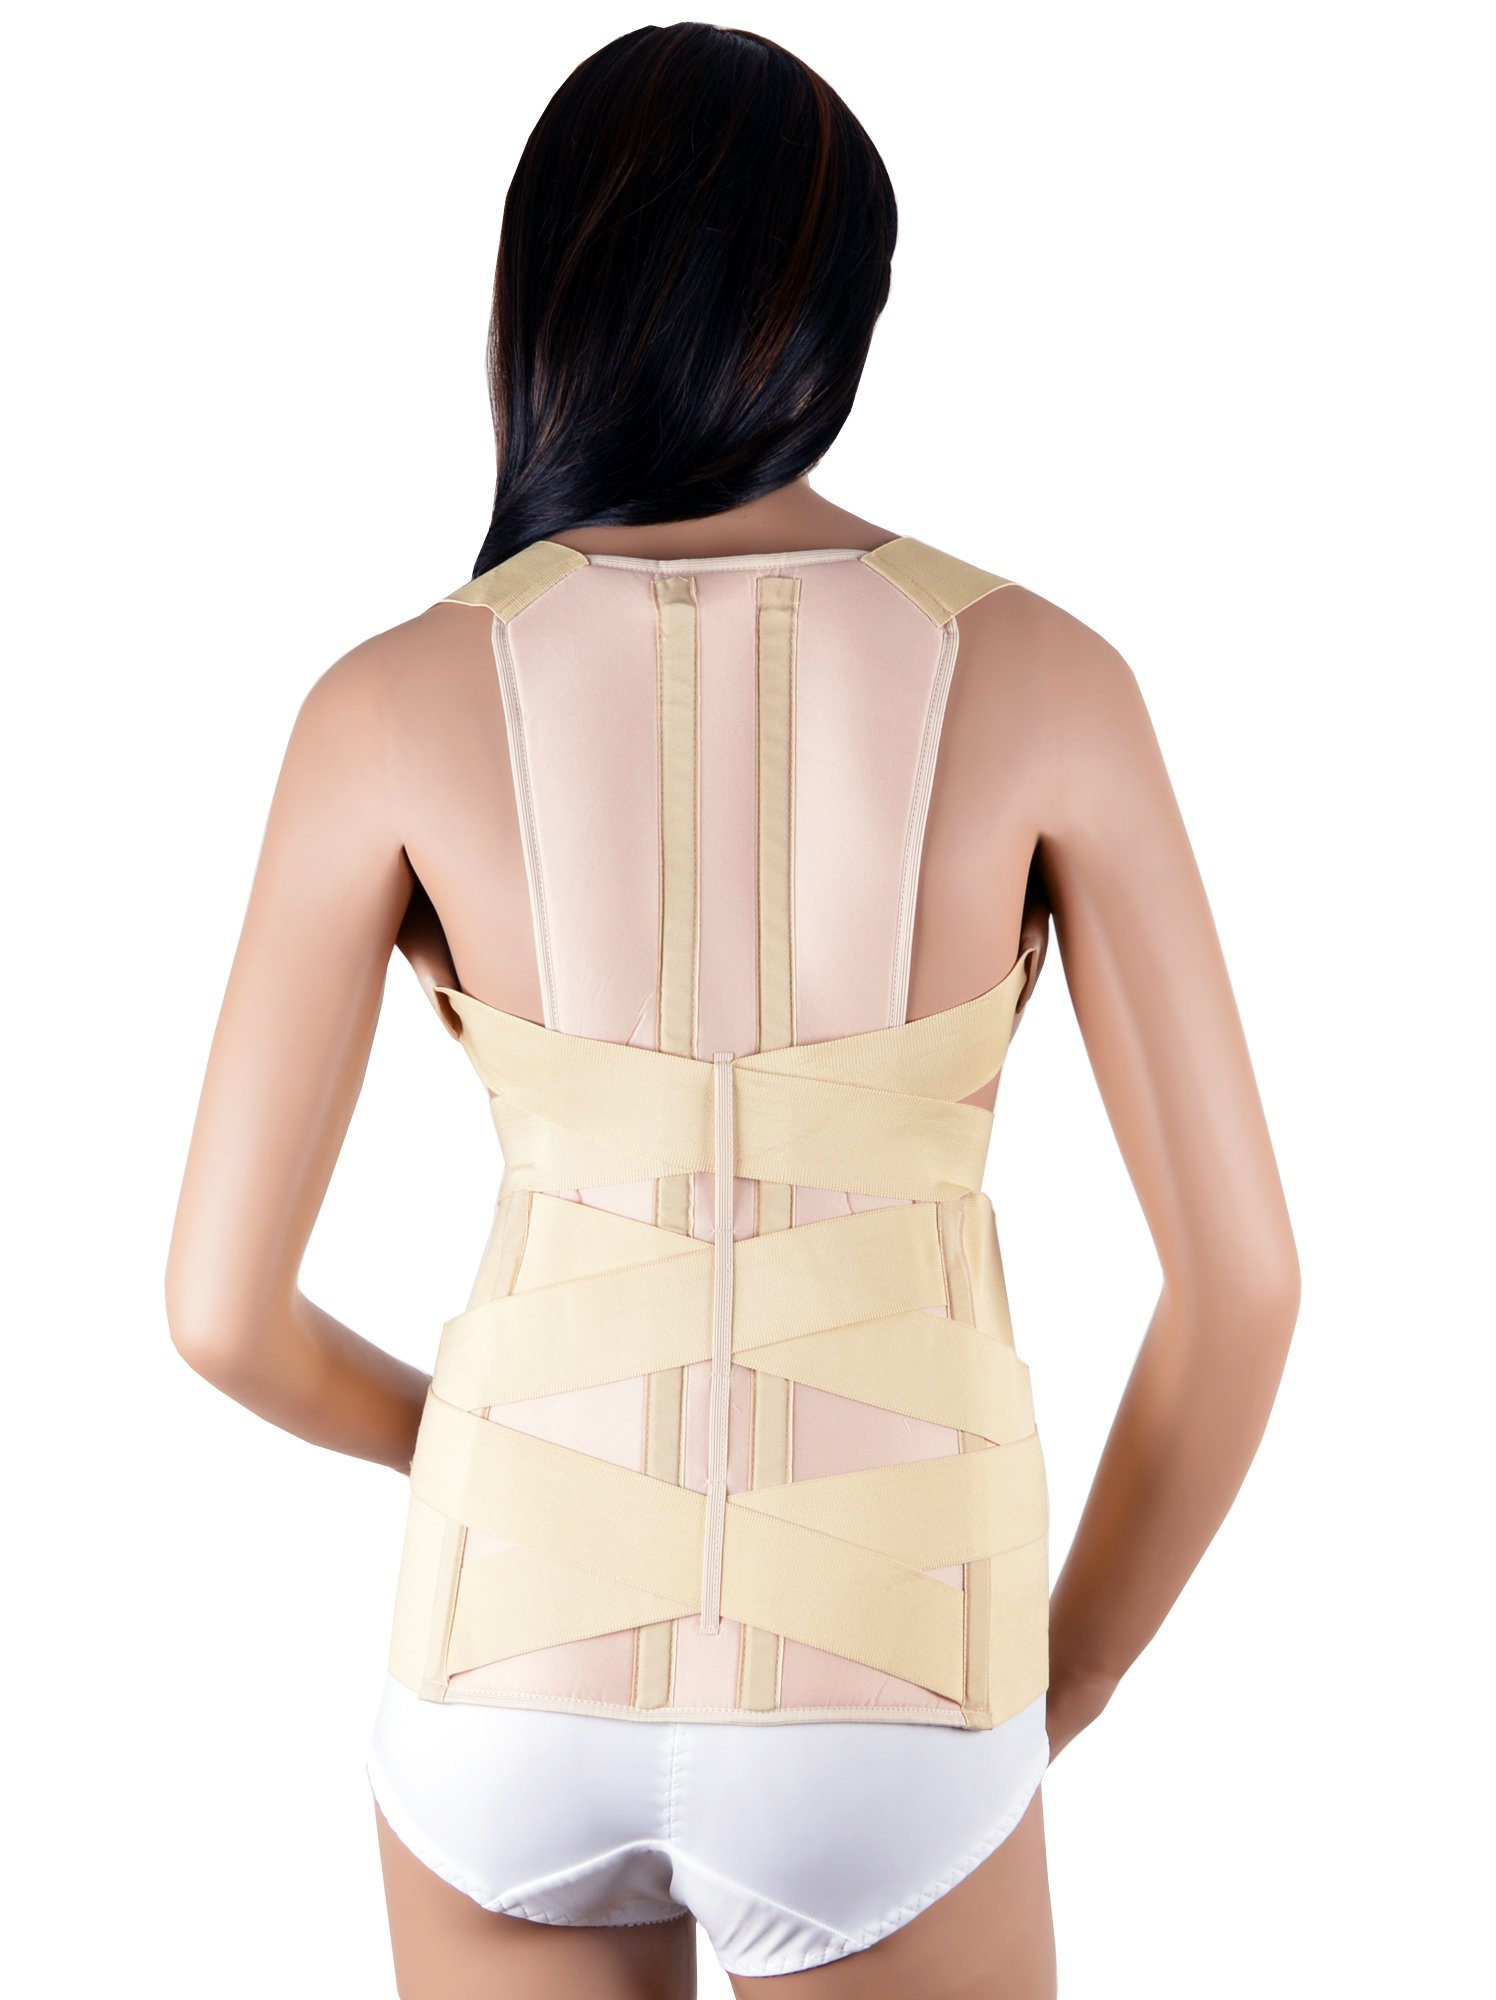 ASSISTICA® Medical Scoliosis Support Brace, Firm Posture Corrector with 2 Back Metal Splints (X-Large) by Assistica